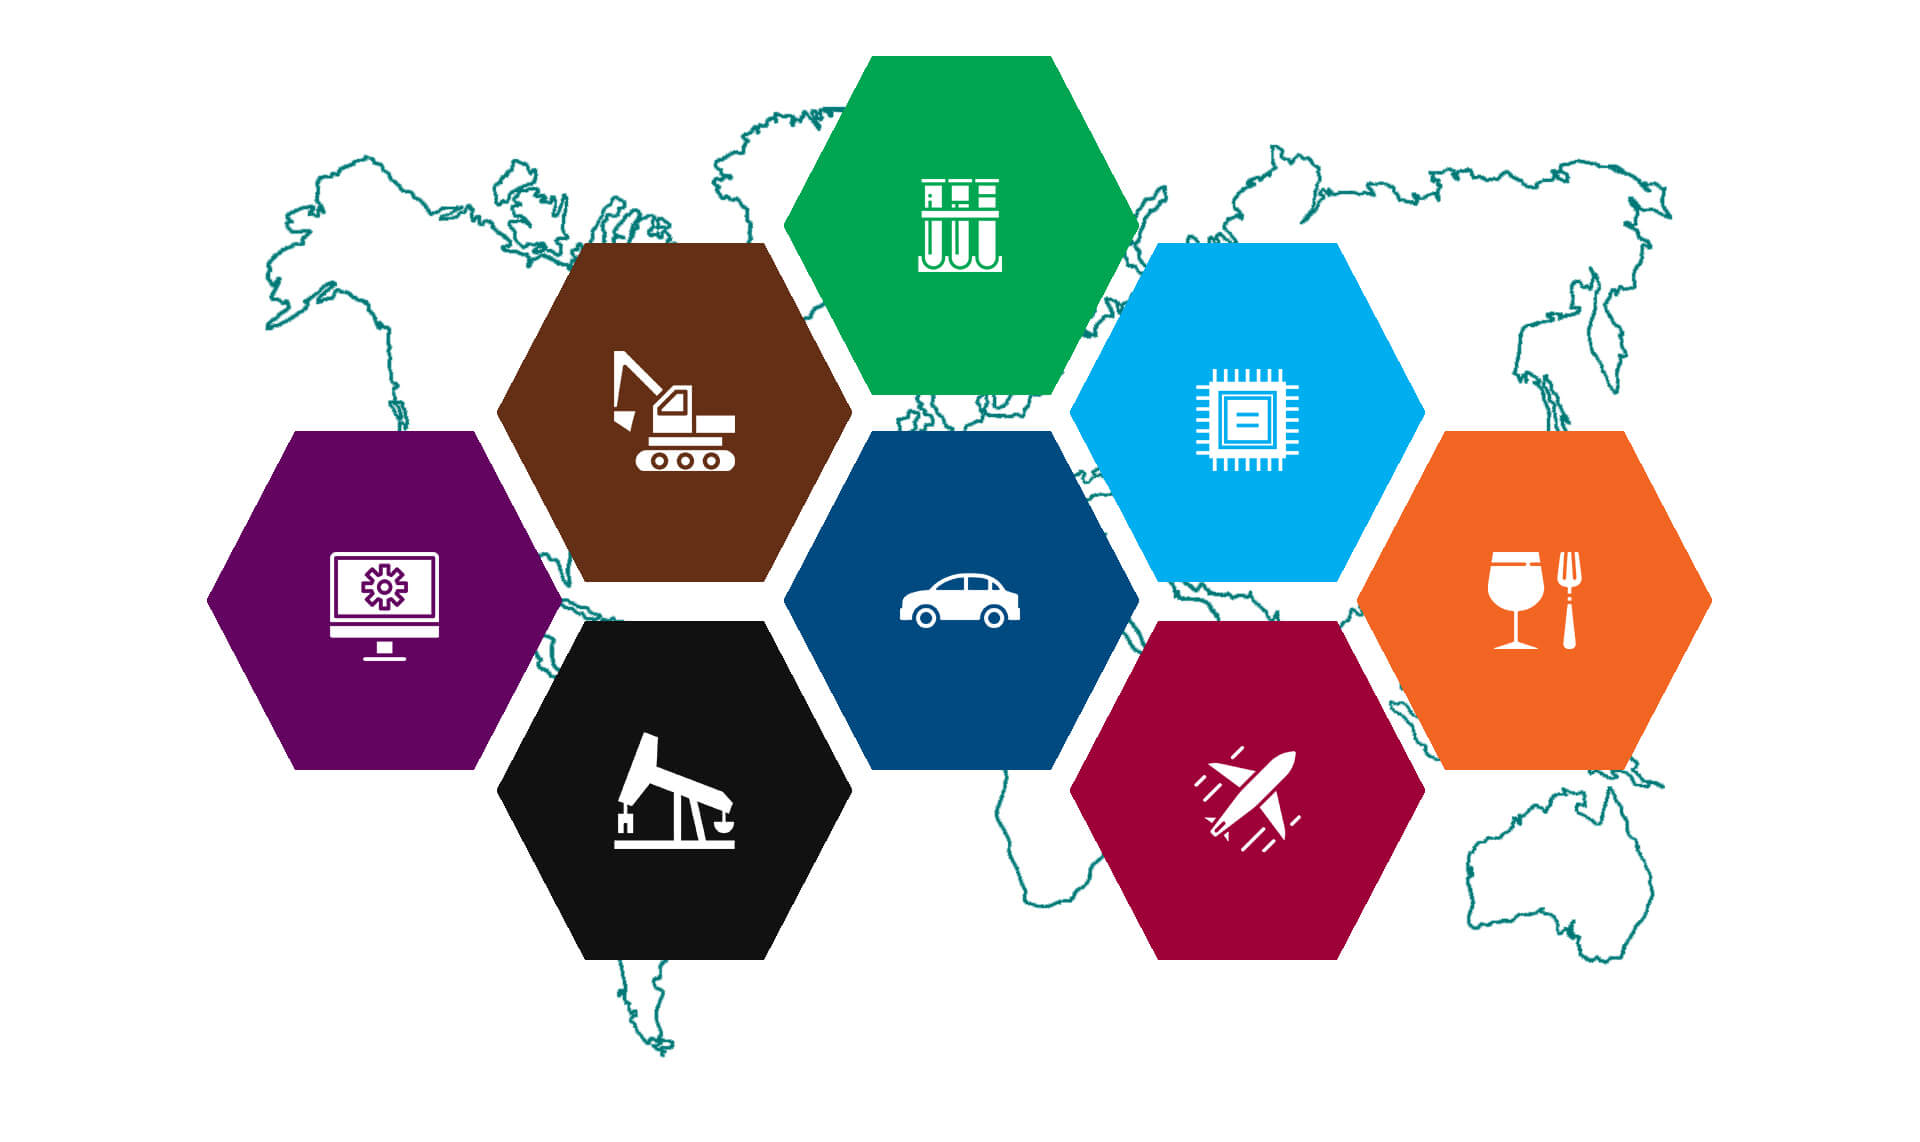 icon representation of industries served, including auto, transportation, construction, food